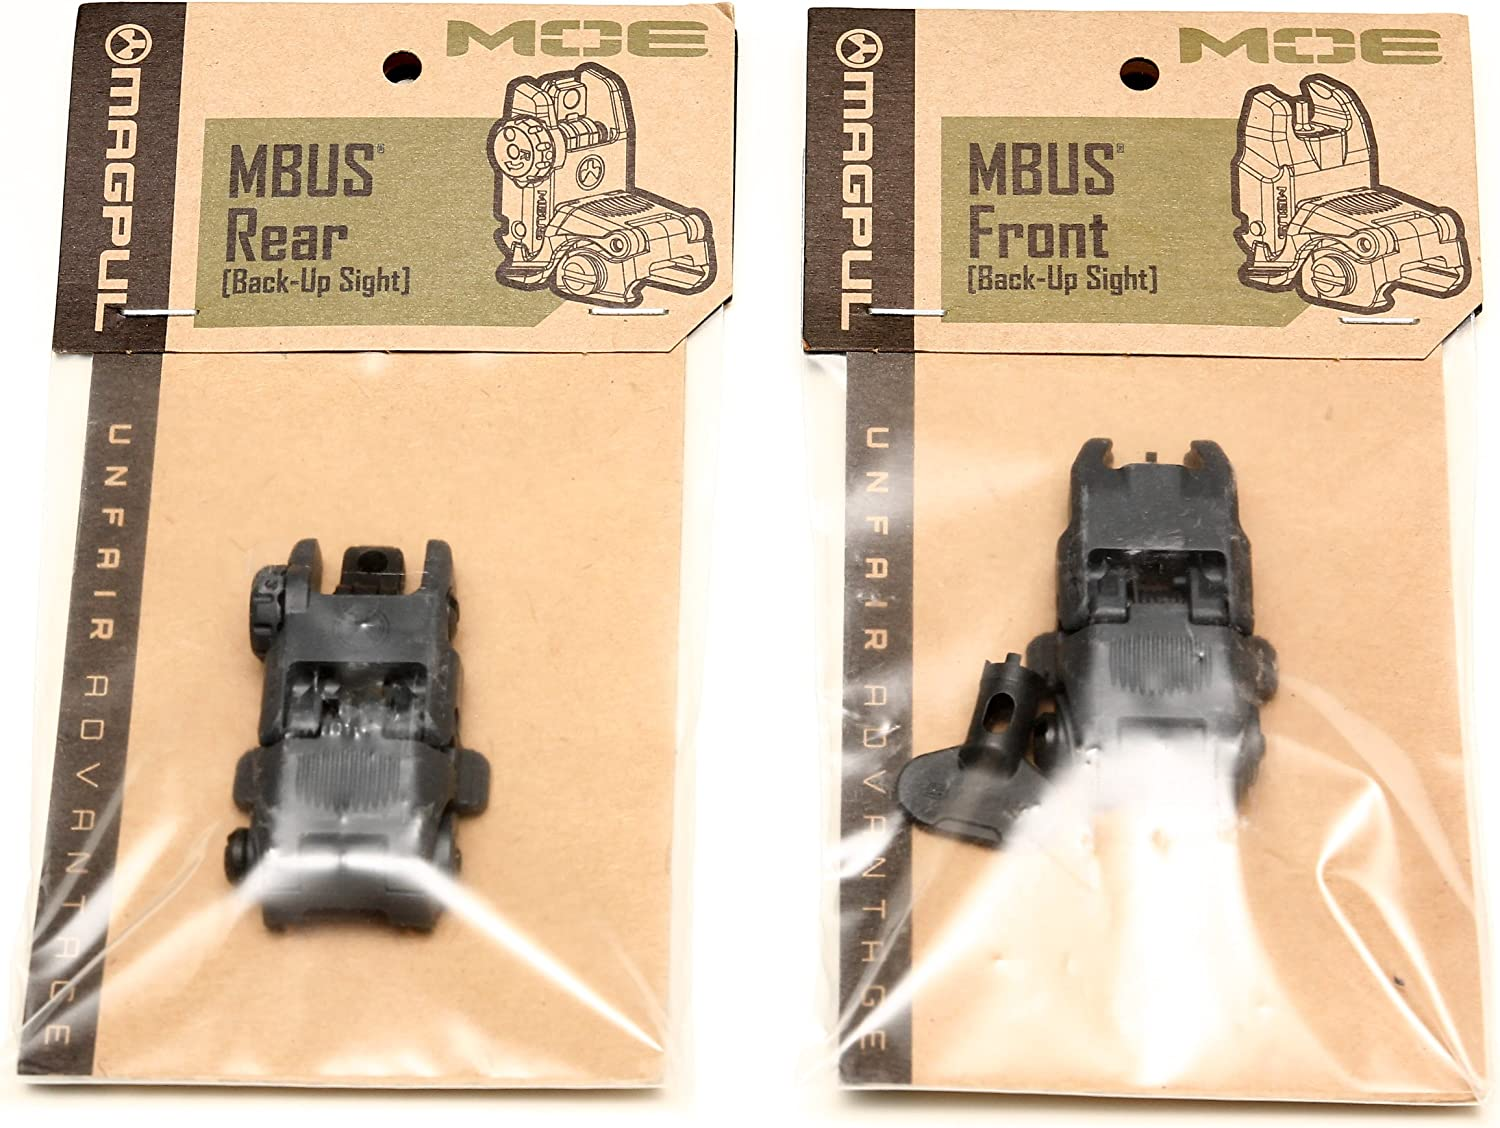 B00WY7Q66Y Magpul Industries MBUS Generation II Sight Set Front & Rear Color- Stealth Gray 715eUPemytL.SL1500_